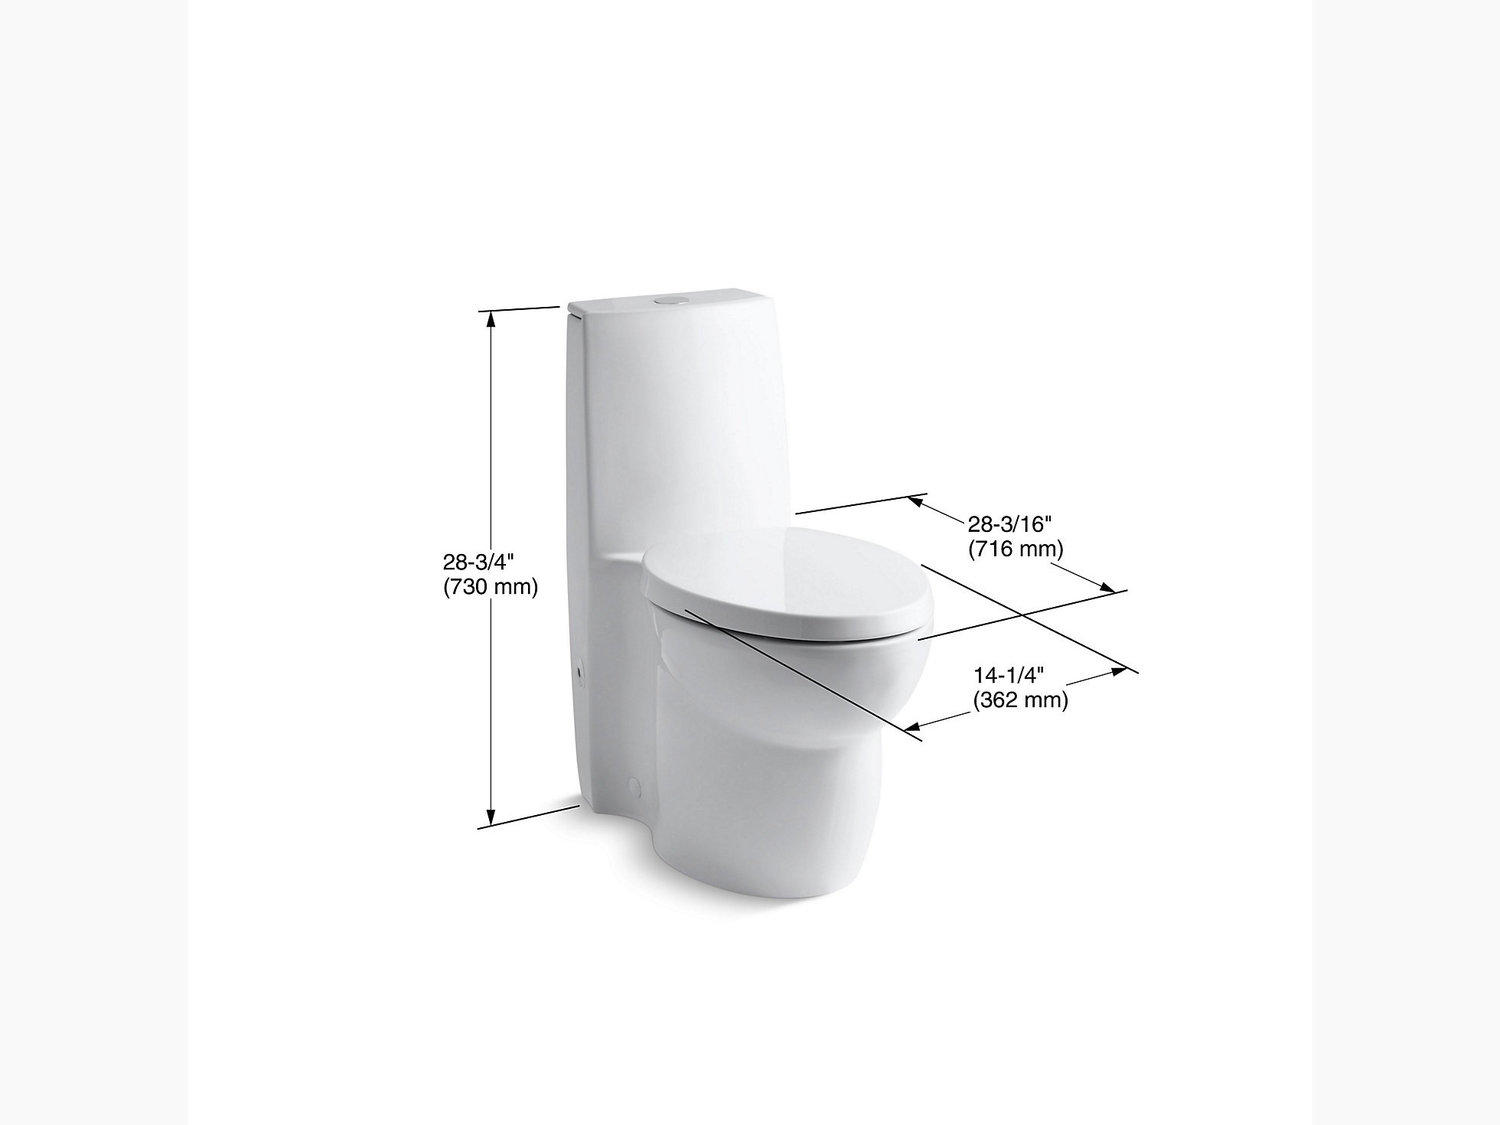 Additional White Skirted One-piece Elongated Dual-flush Toilet With Top Actuator and Saile Quiet-close Toilet Seat With Quick-release Functionality